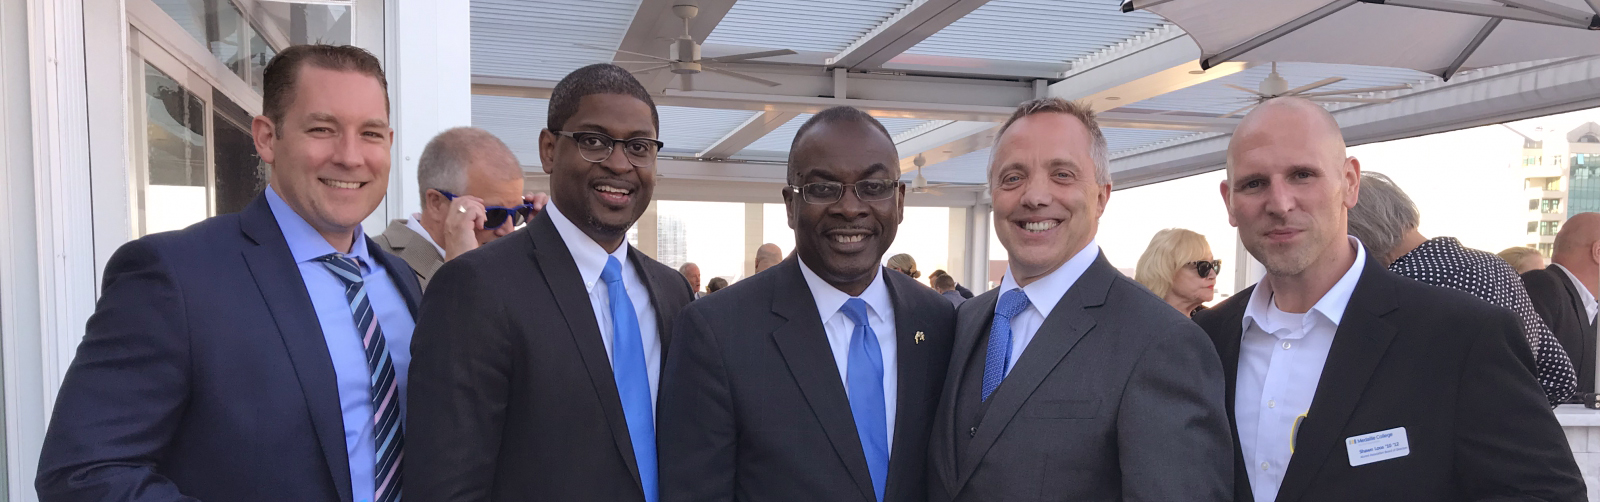 Medaille College Alumni and Admin with Buffalo, NY Mayor Brown